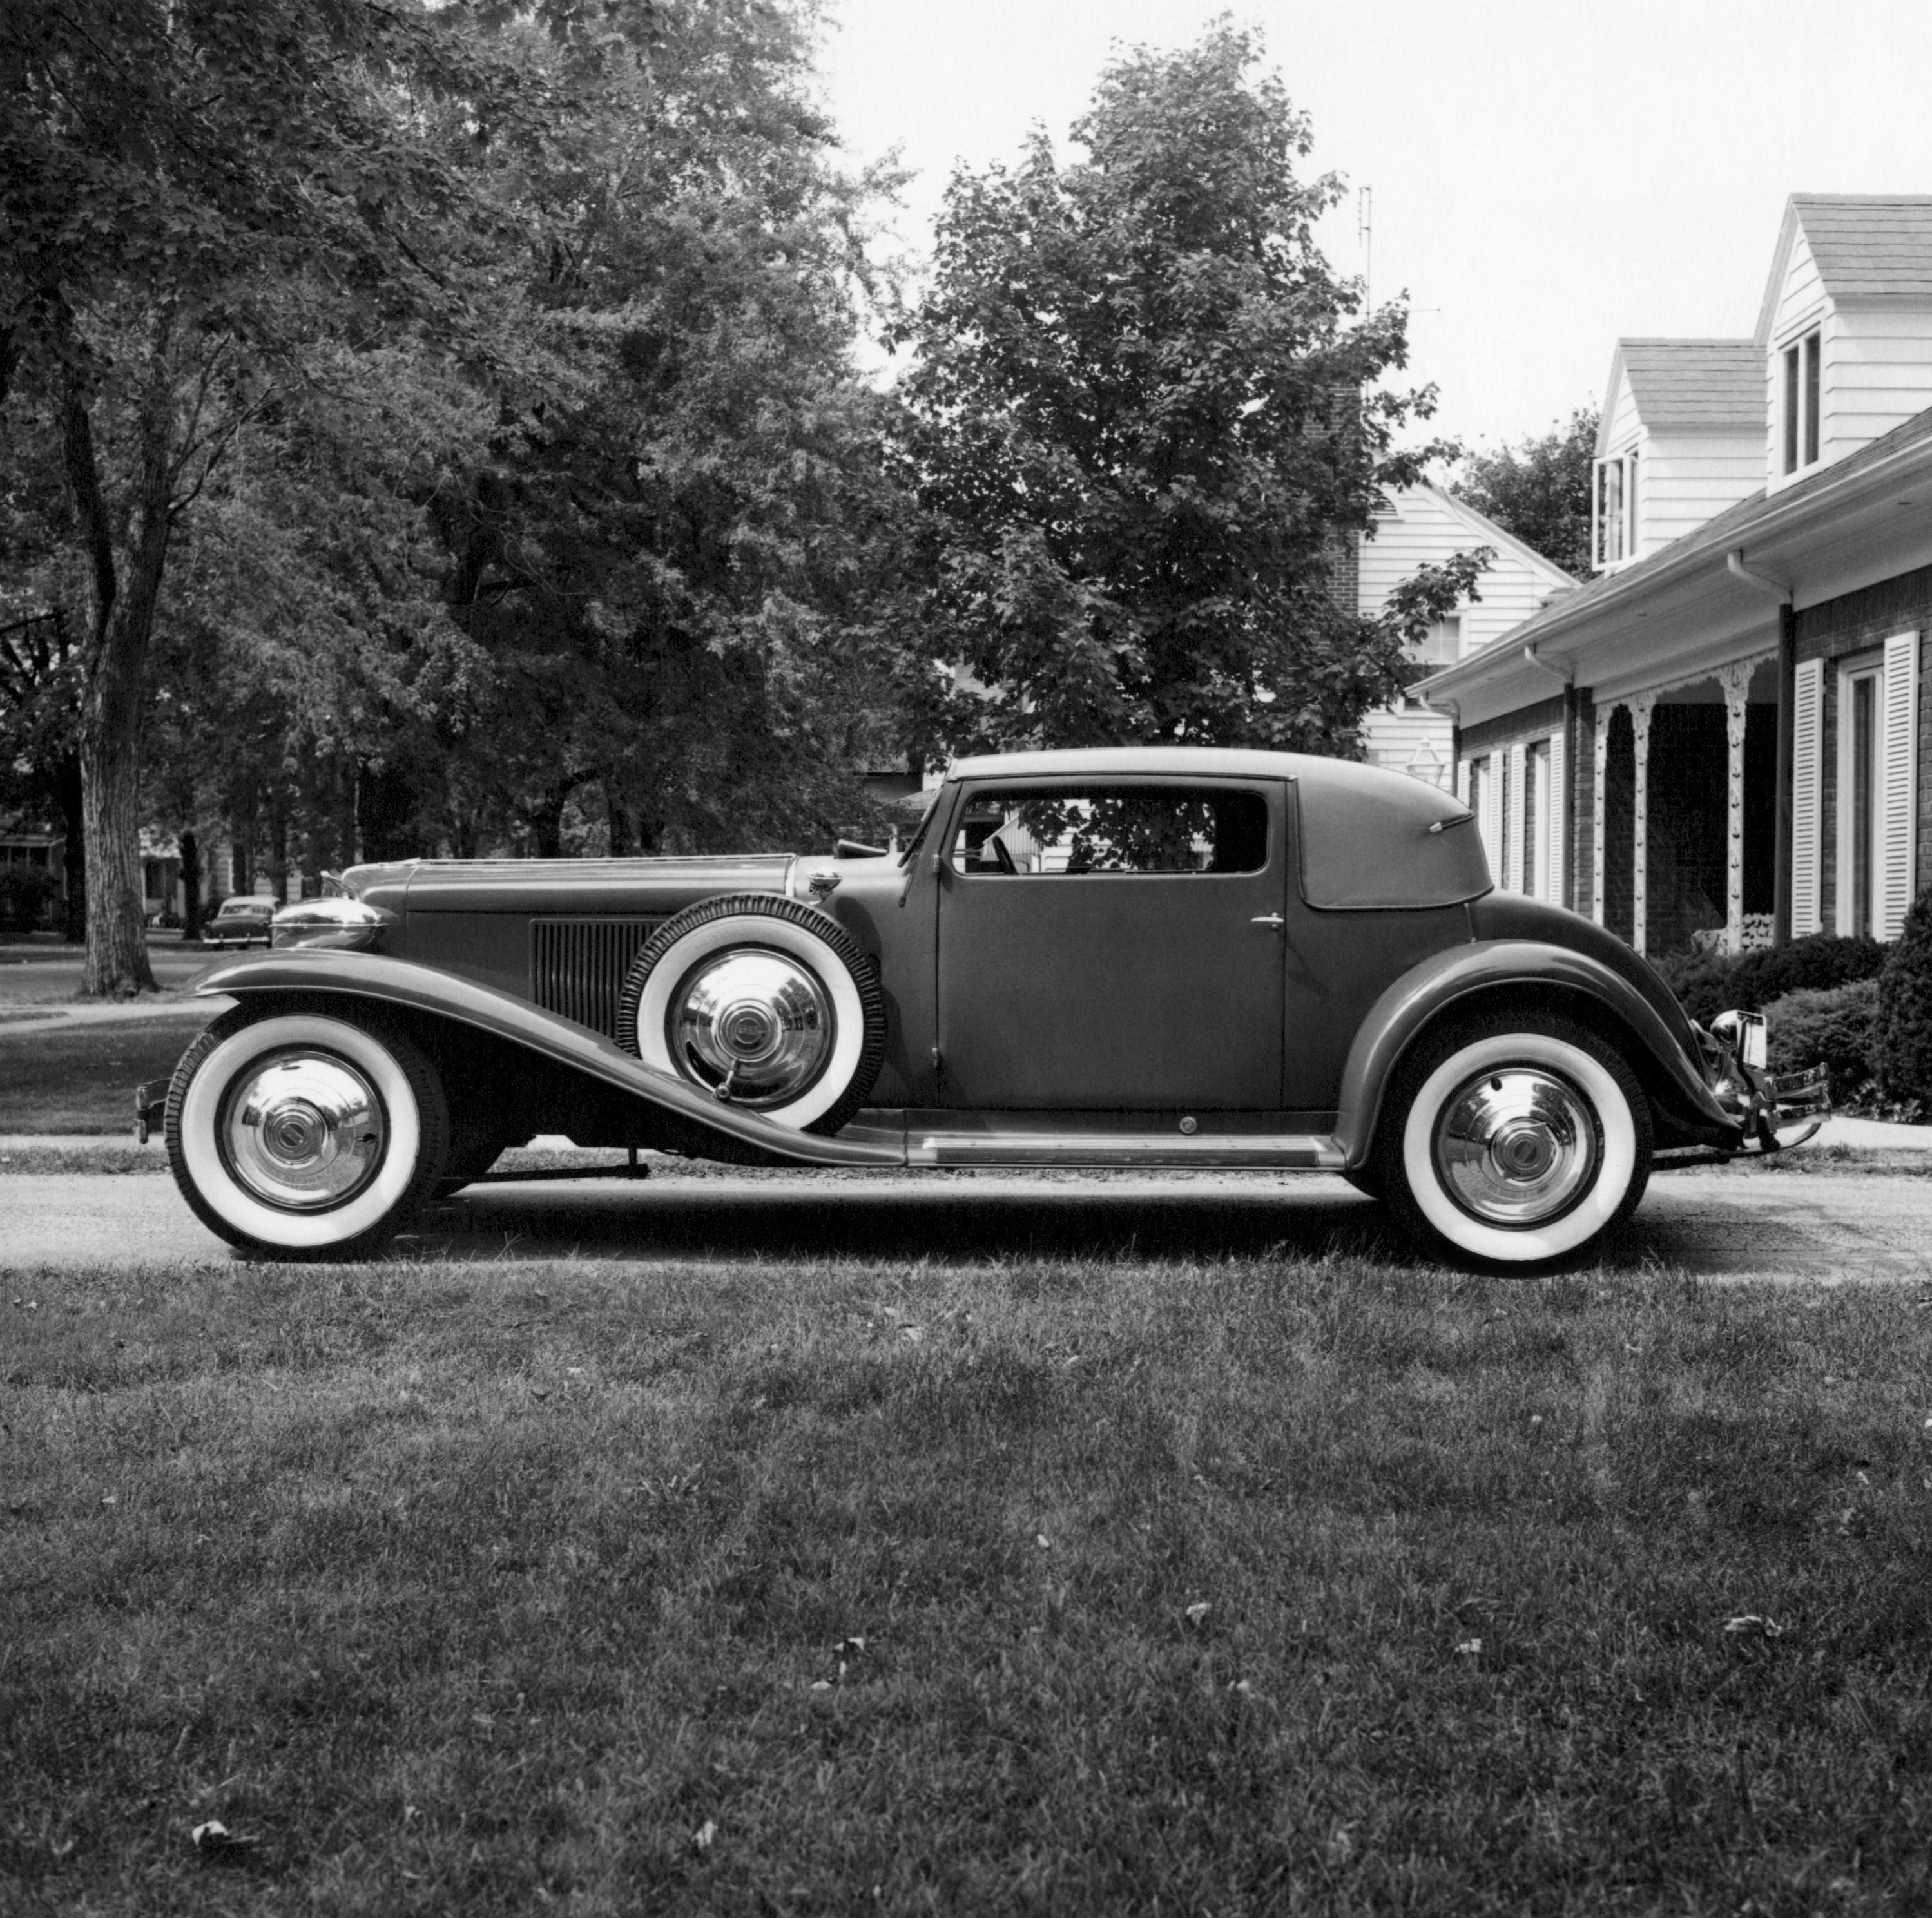 1930 Cord L-29 Coupe by Weymann | Beautiful cars, Vintage cars ...